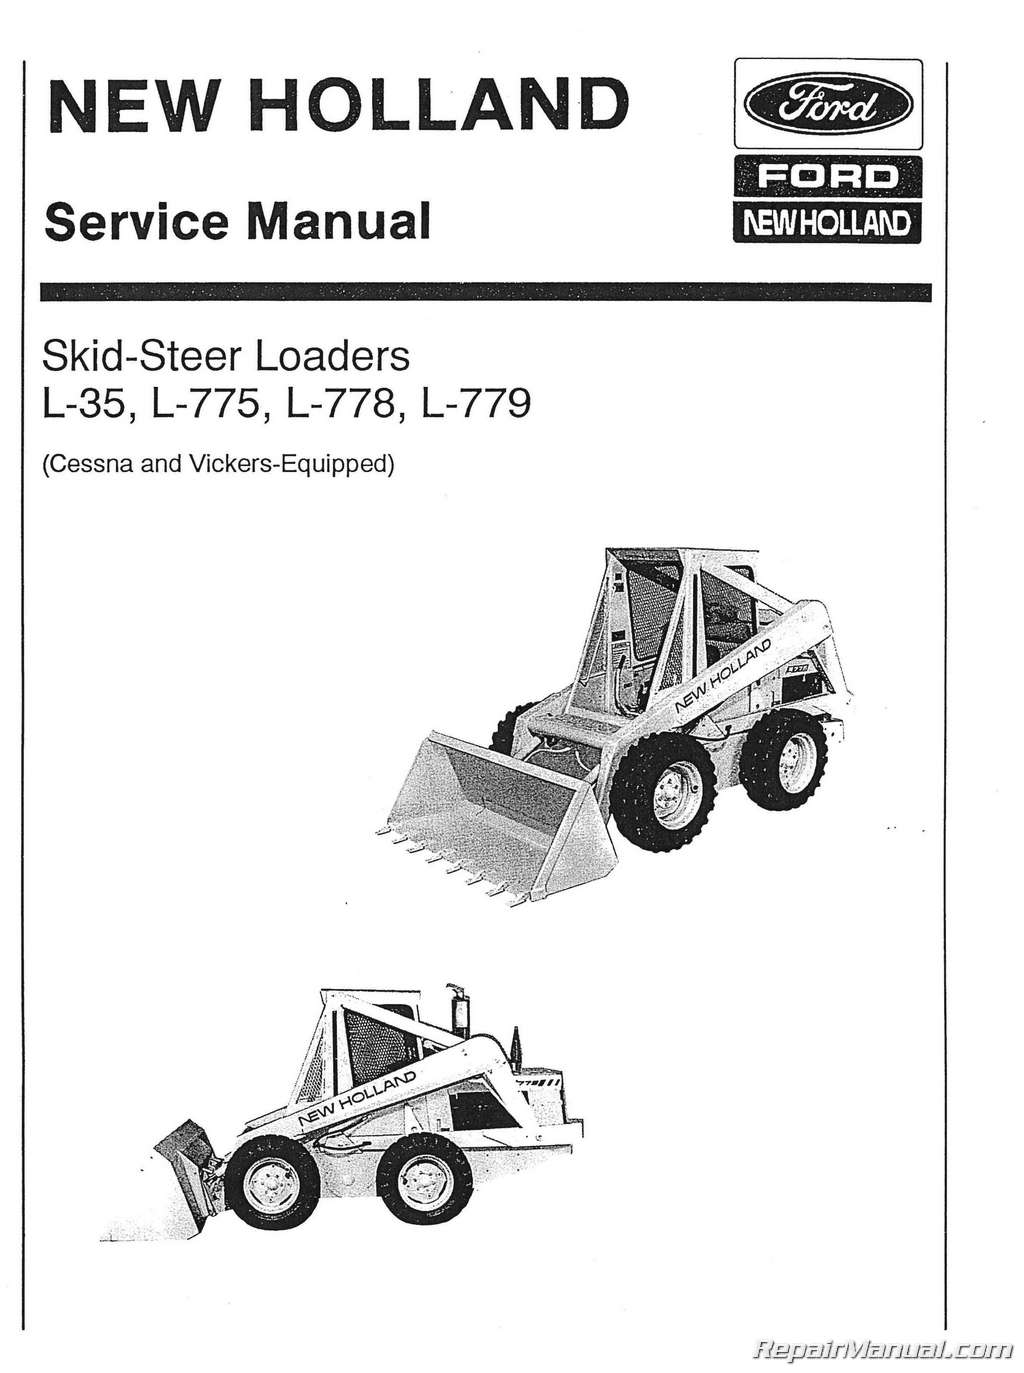 new holland skid steer wiring diagram ecm ford l35 l775 l778 l779 service manual